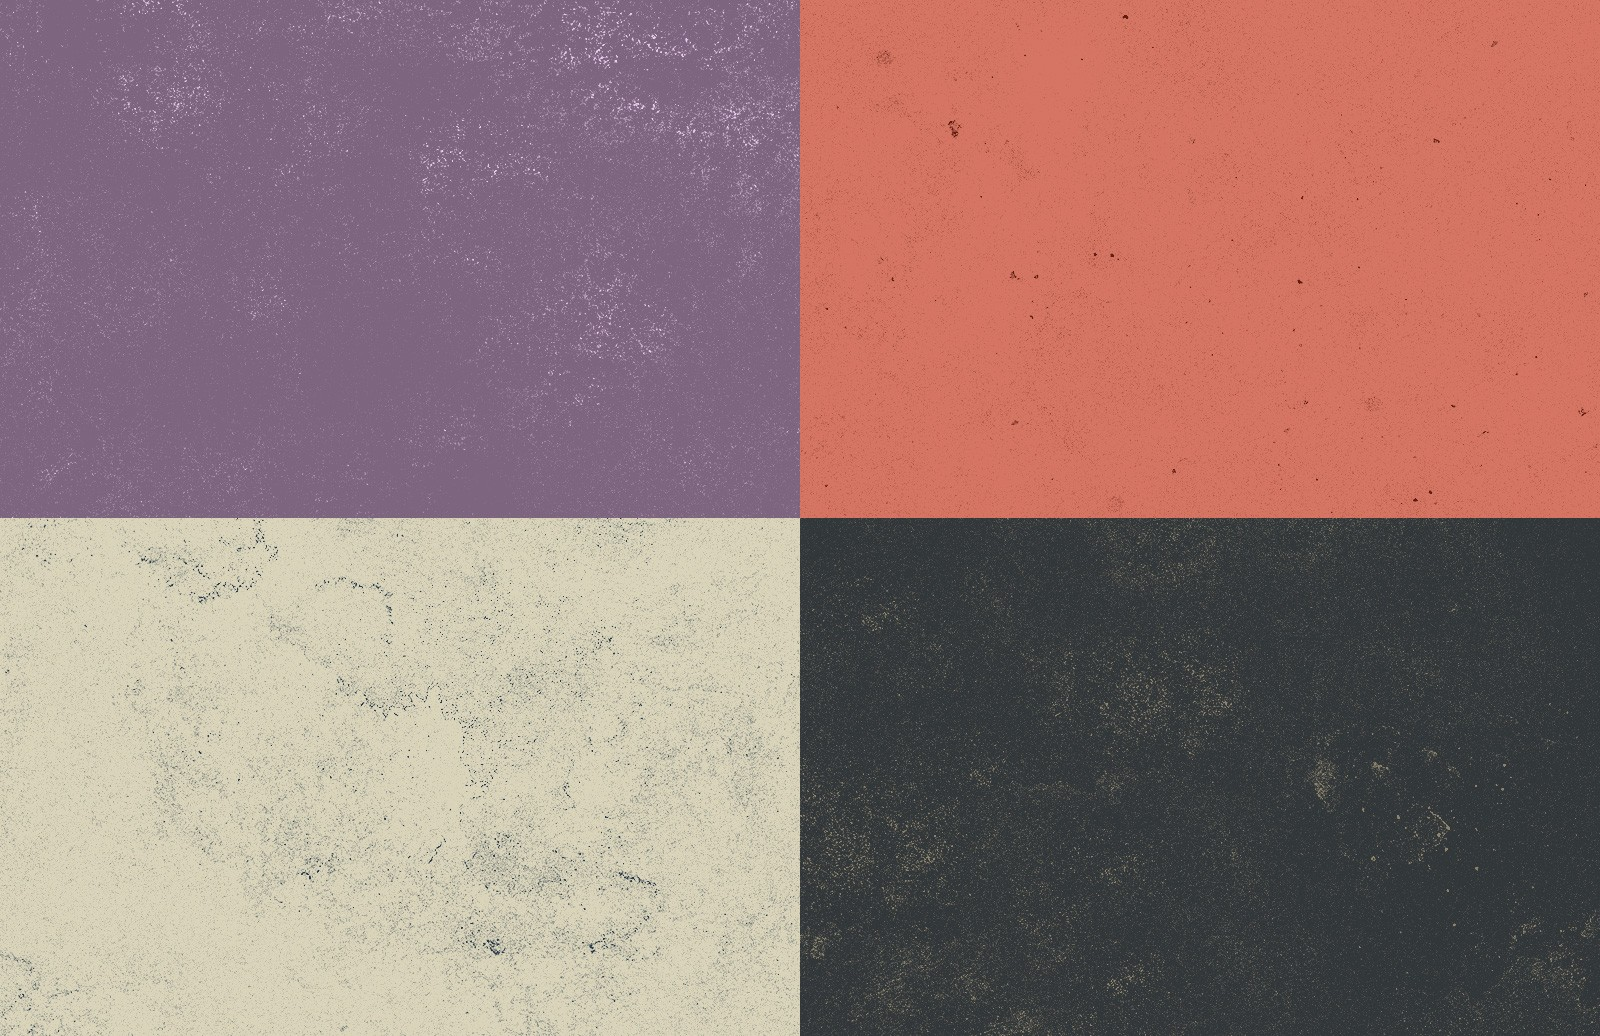 Large Noise   Grit  Seamless  Textures  Preview 2